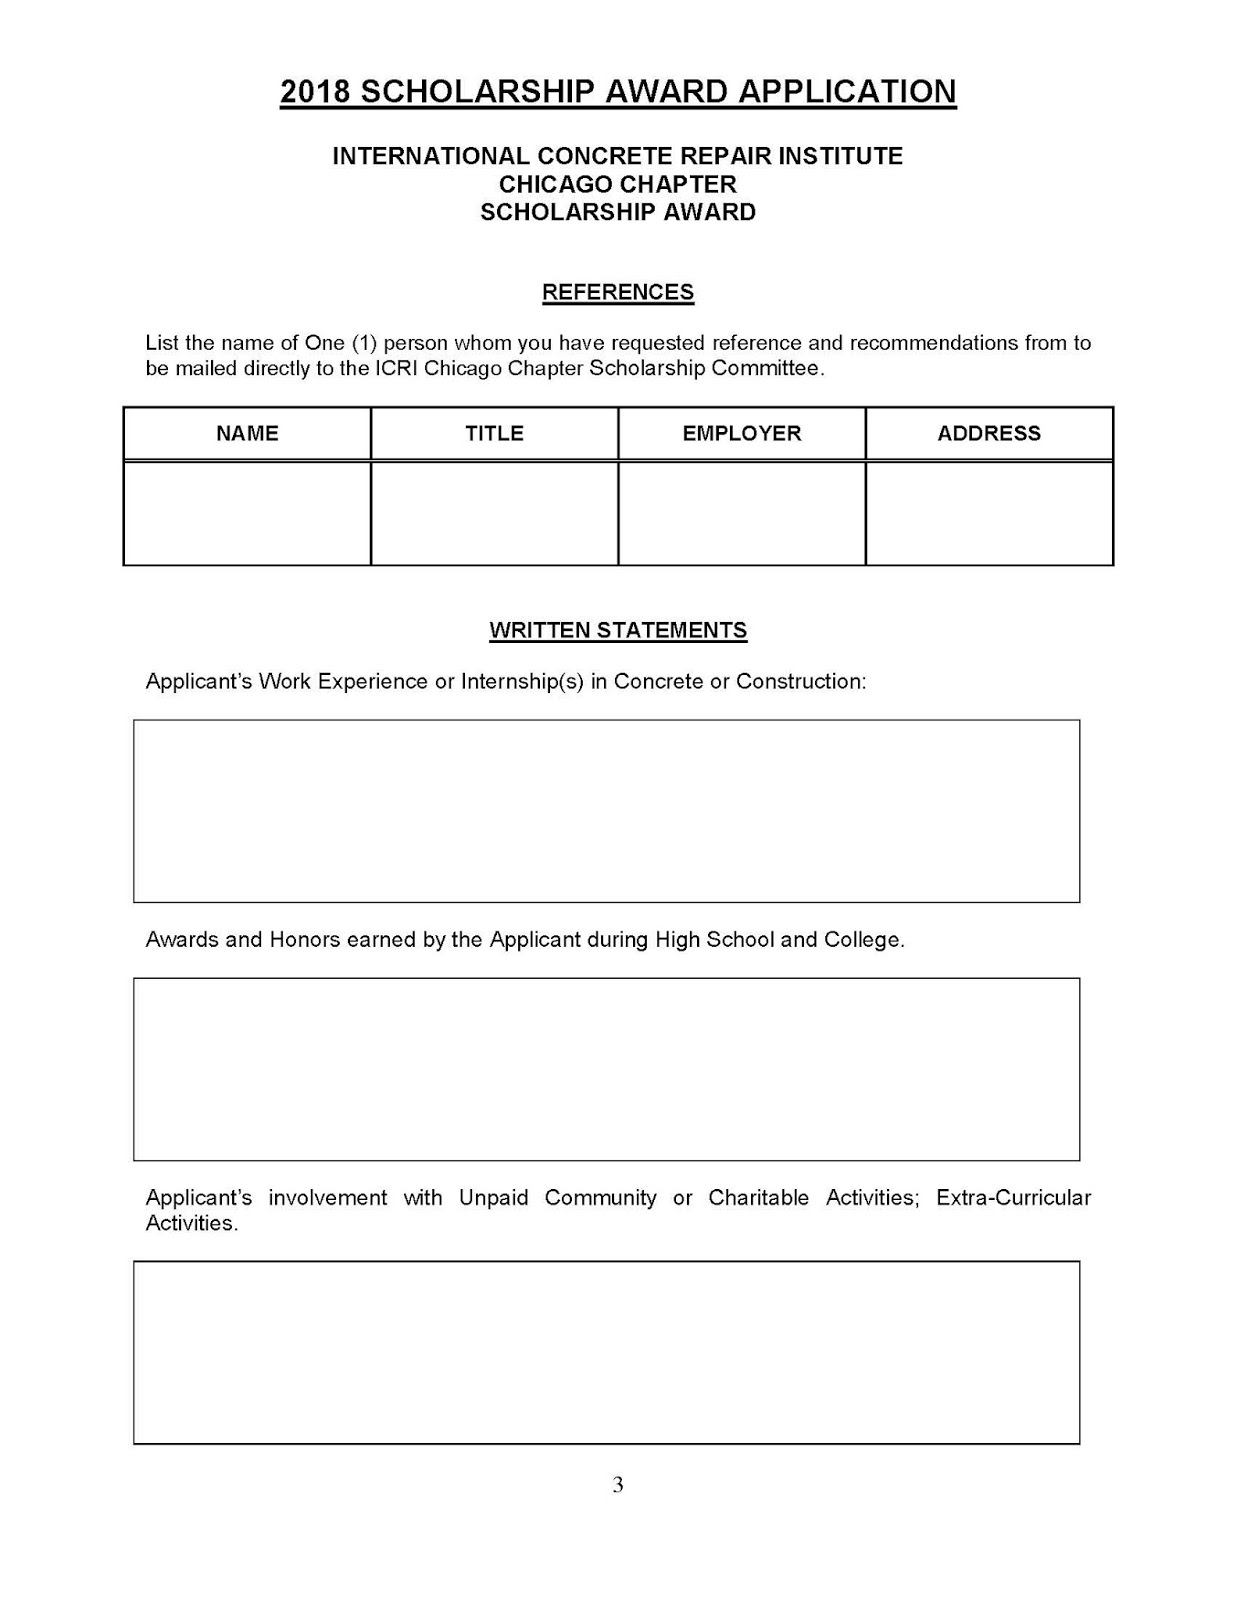 Free standard form scholarship application form for engineering free form templates our battle tested template designs are proven to land interviews download for free for commercial or non commercial projects altavistaventures